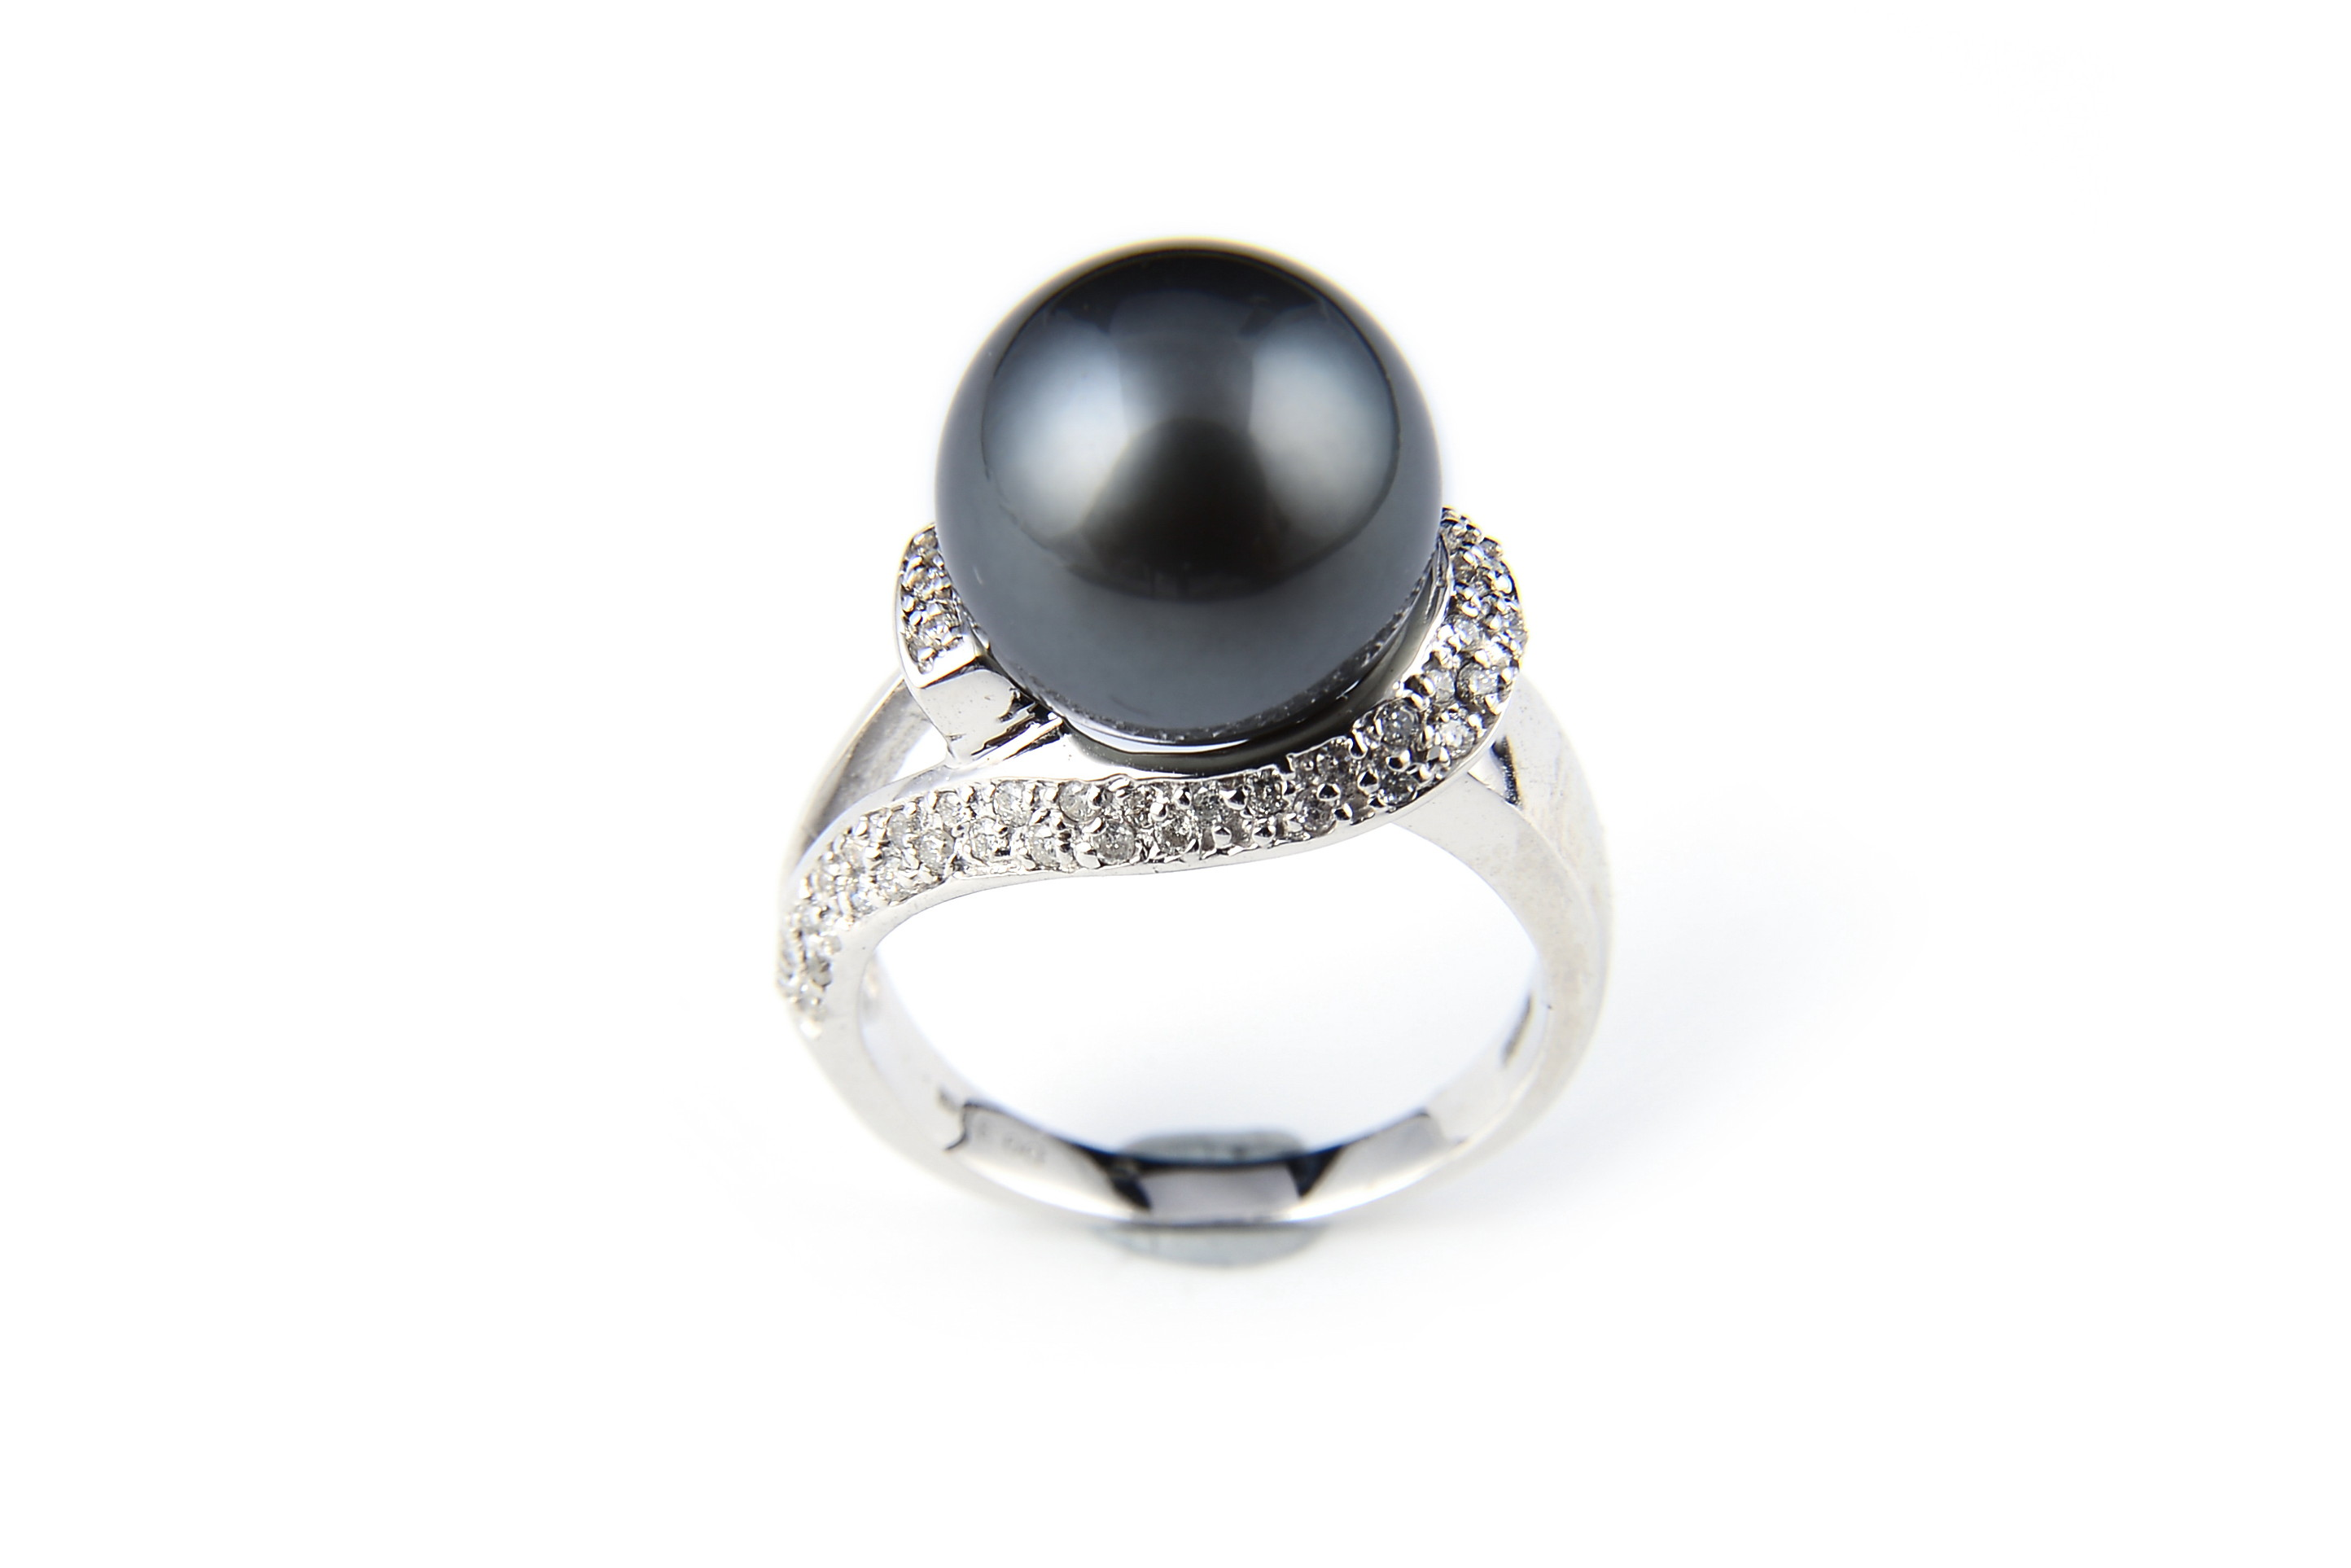 11mm AAA+ Gem Quality Black Tahitian Pearl Ring W/ Diamonds -rg9